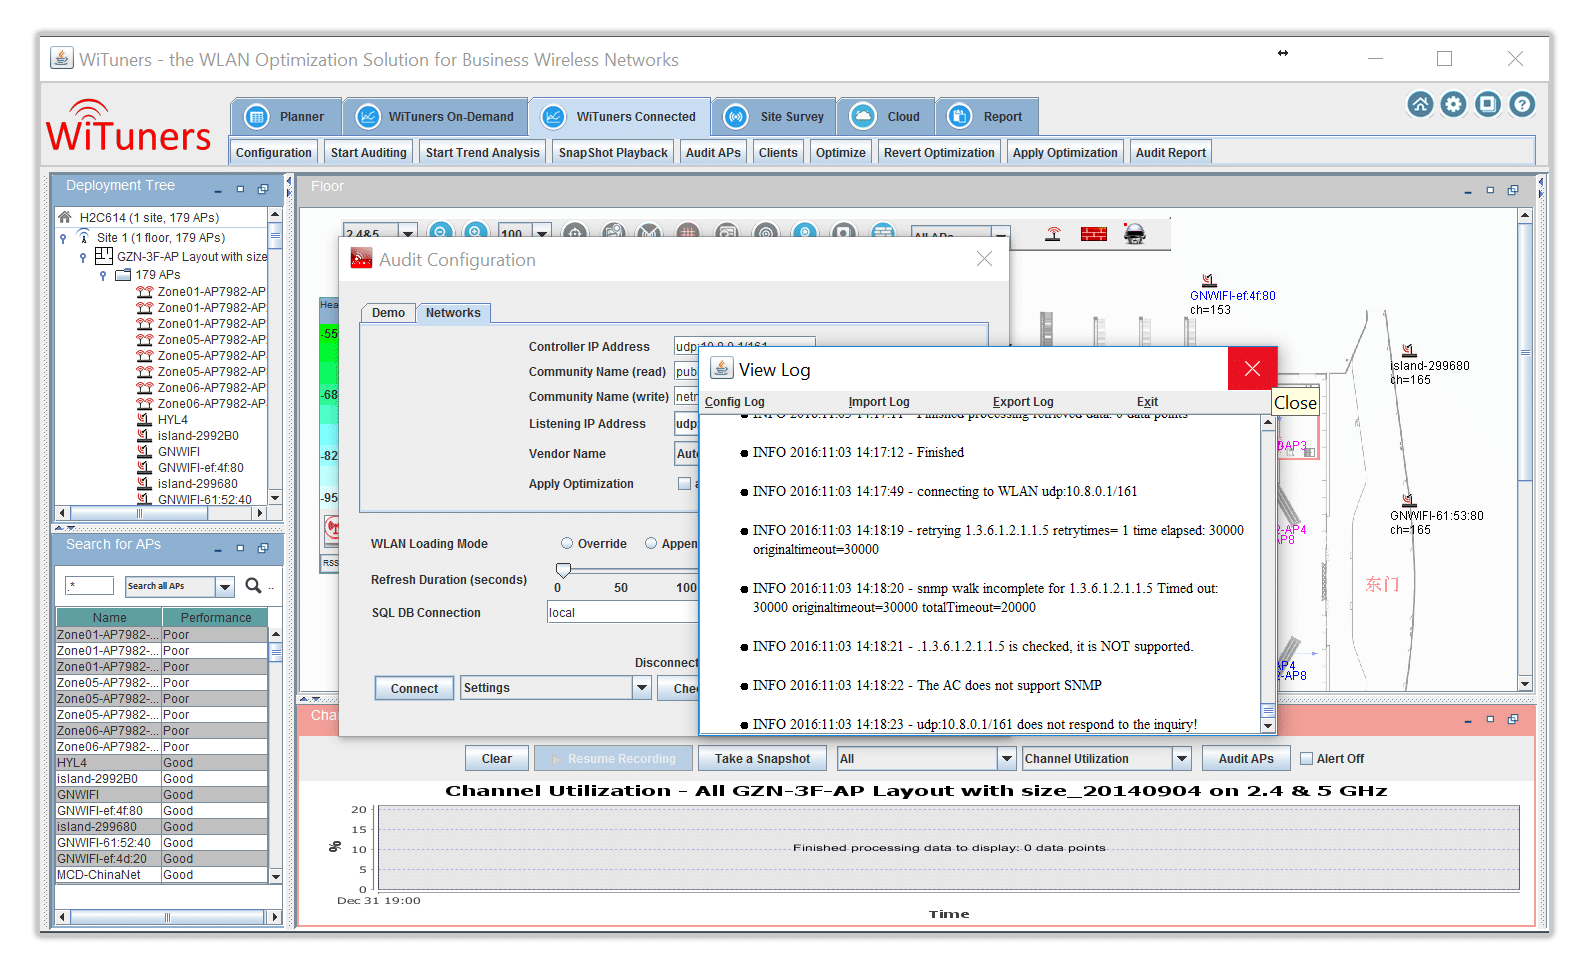 detail connected log in WiFi Monitoring Software